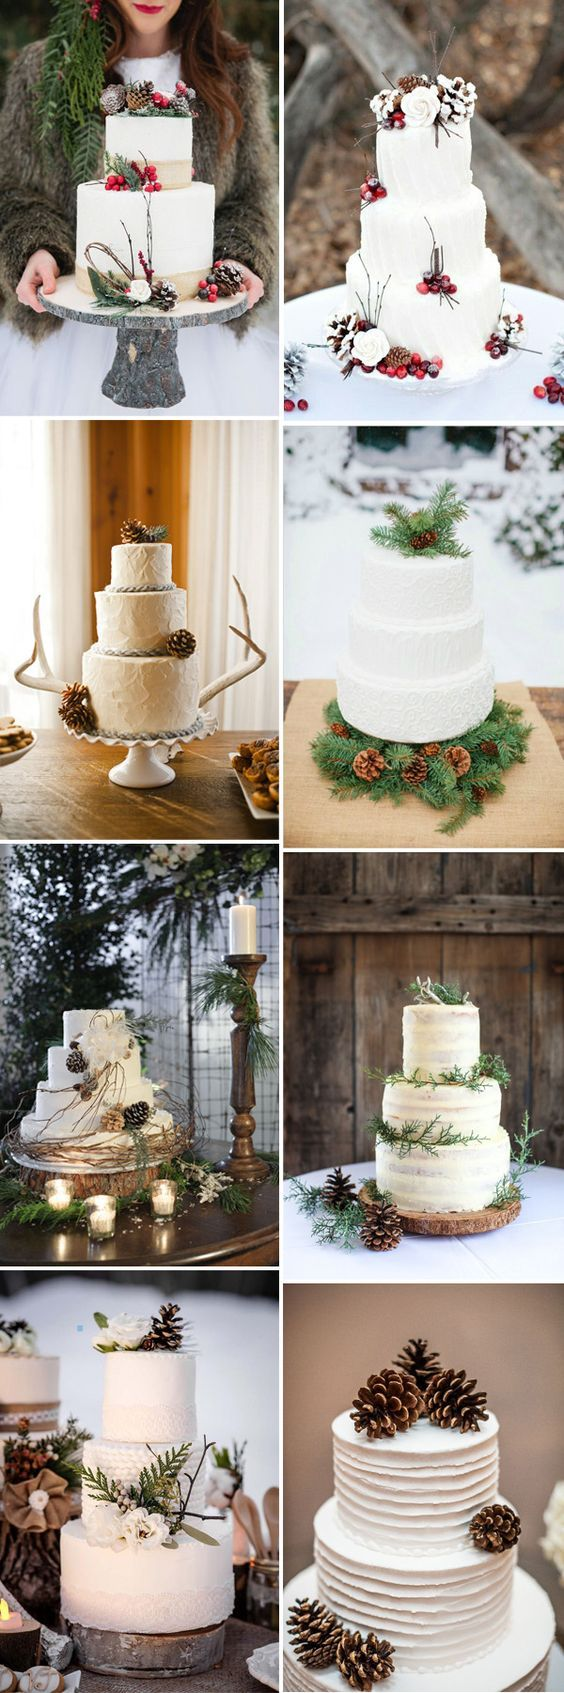 fabulous white winter wedding cakes Decorate your winter wedding cake with winter decorations from afloral.com #diywedding http://www.afloral.com/